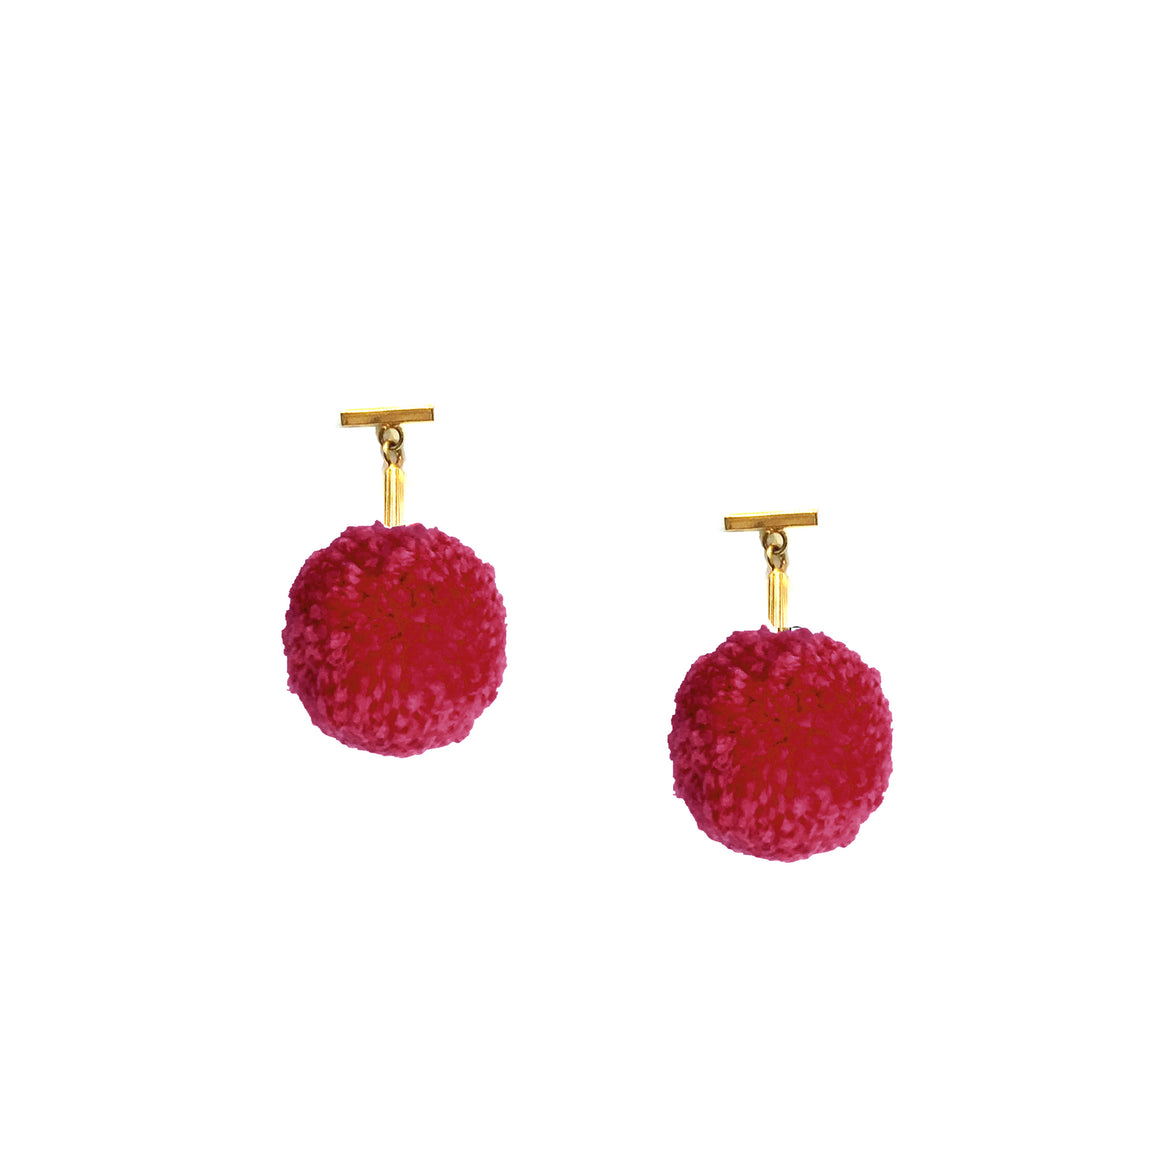 "Cranberry 1"" Yarn Pom Pom T Stud Earrings"